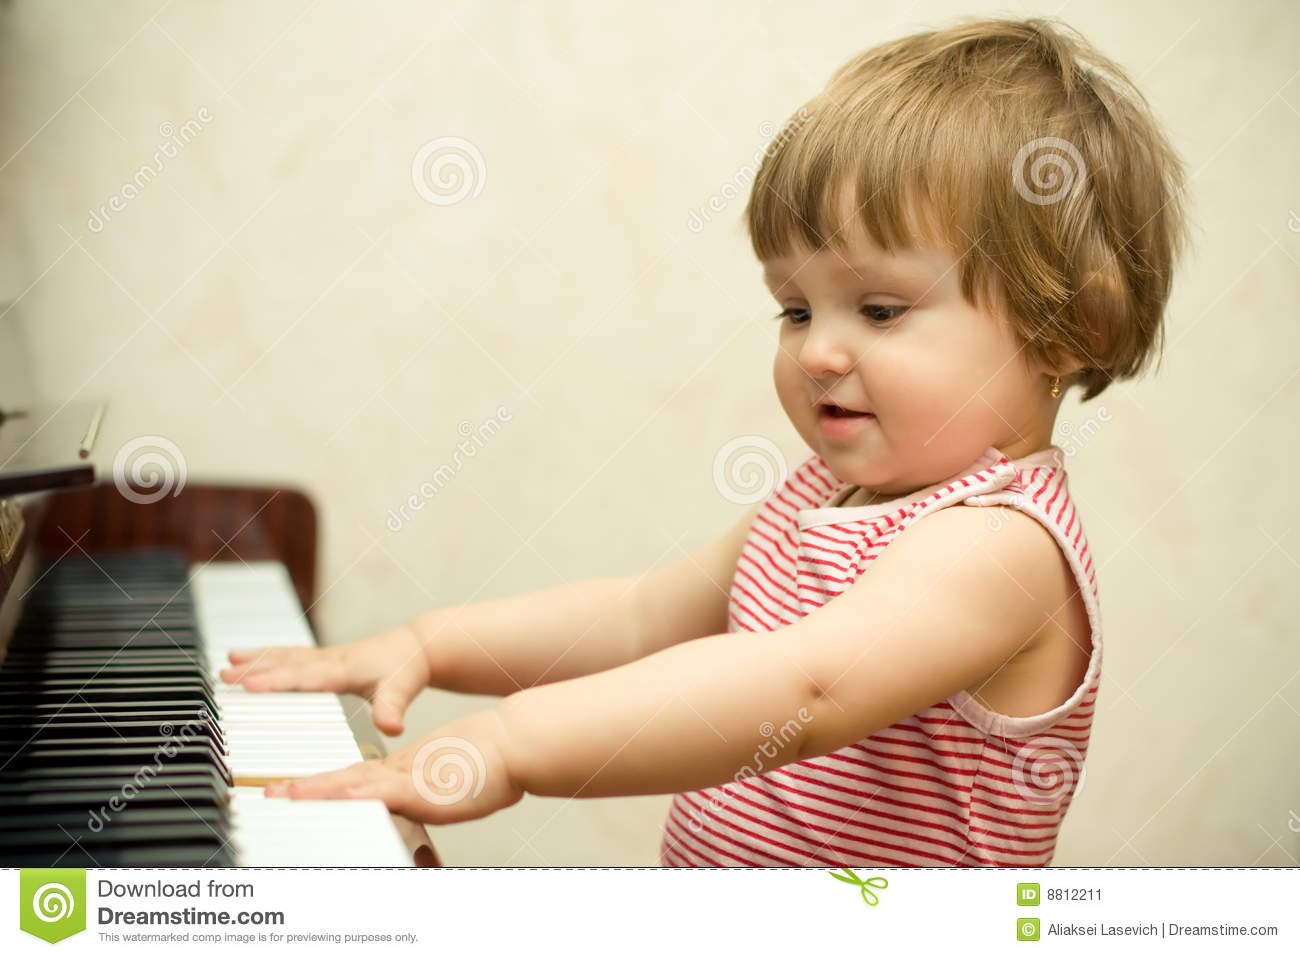 Flicka little pianospelrum